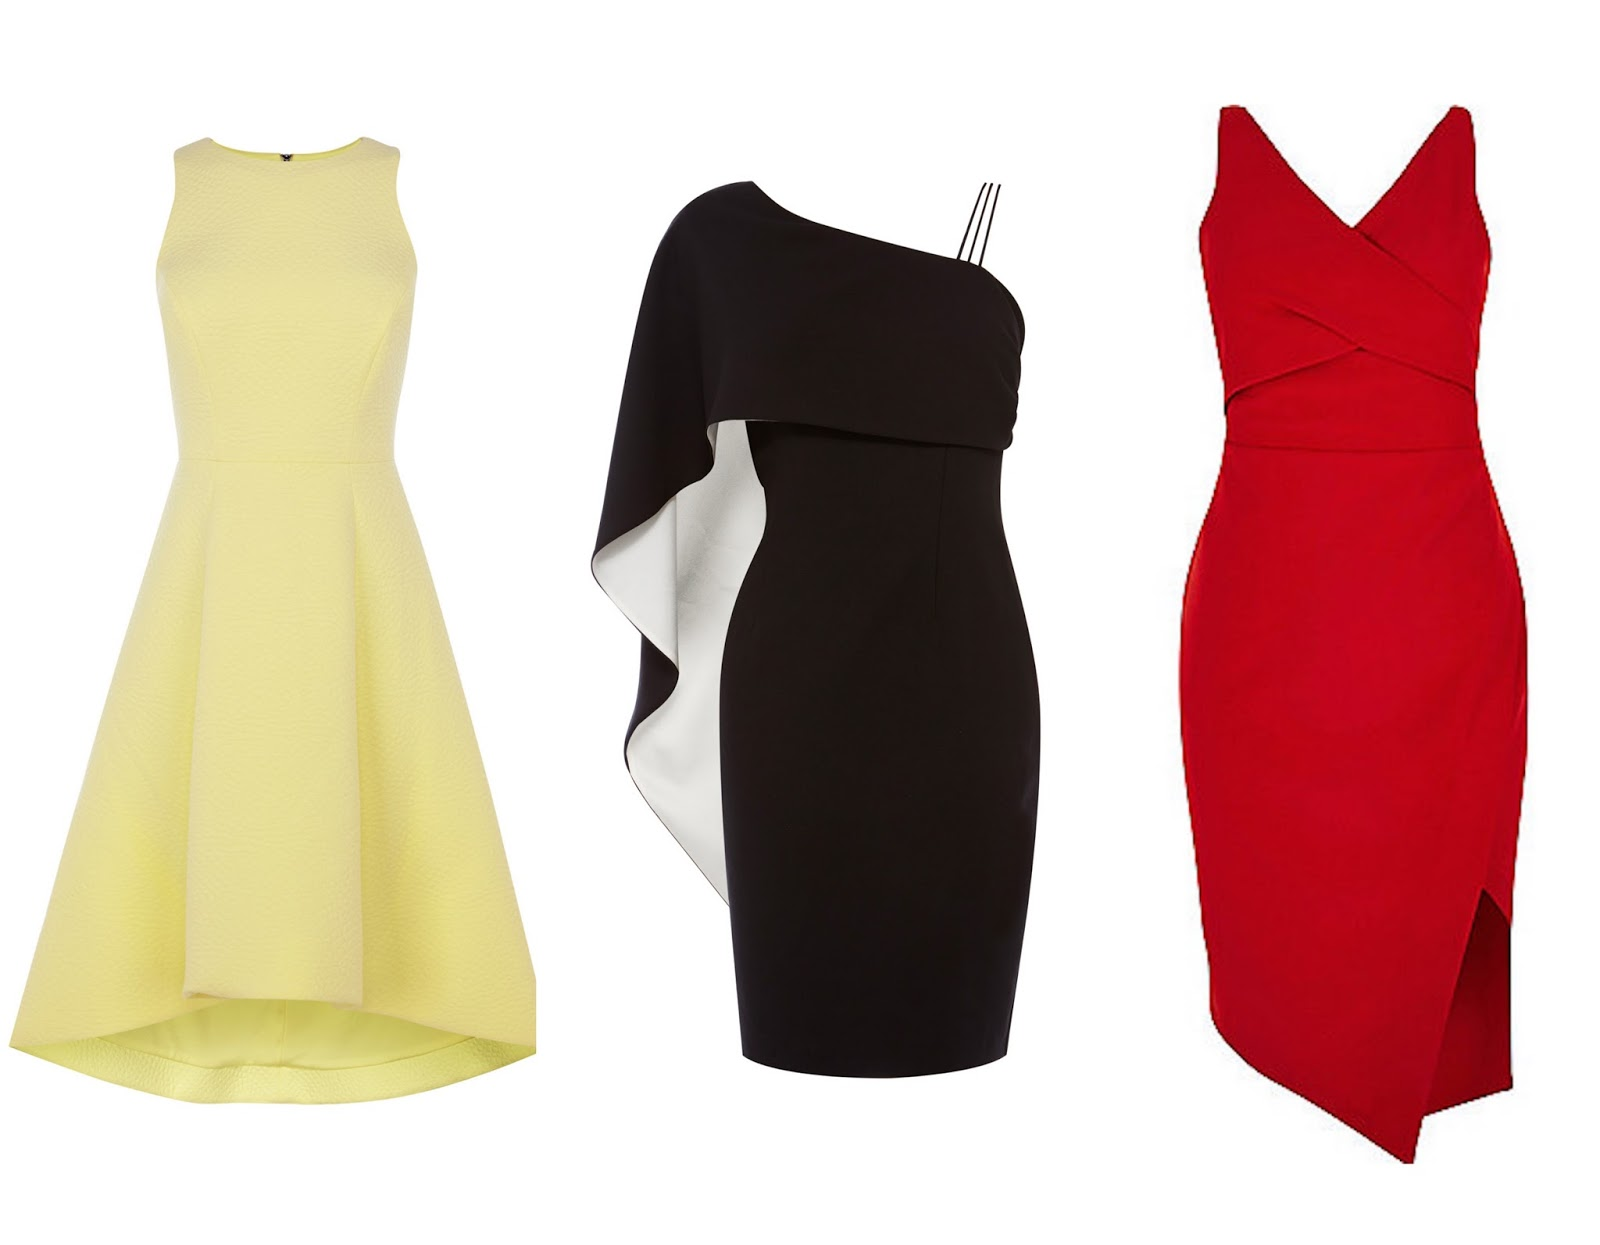 Dresses For Wedding Guest River Island : Wedding guest fashion inspiration style me curvy